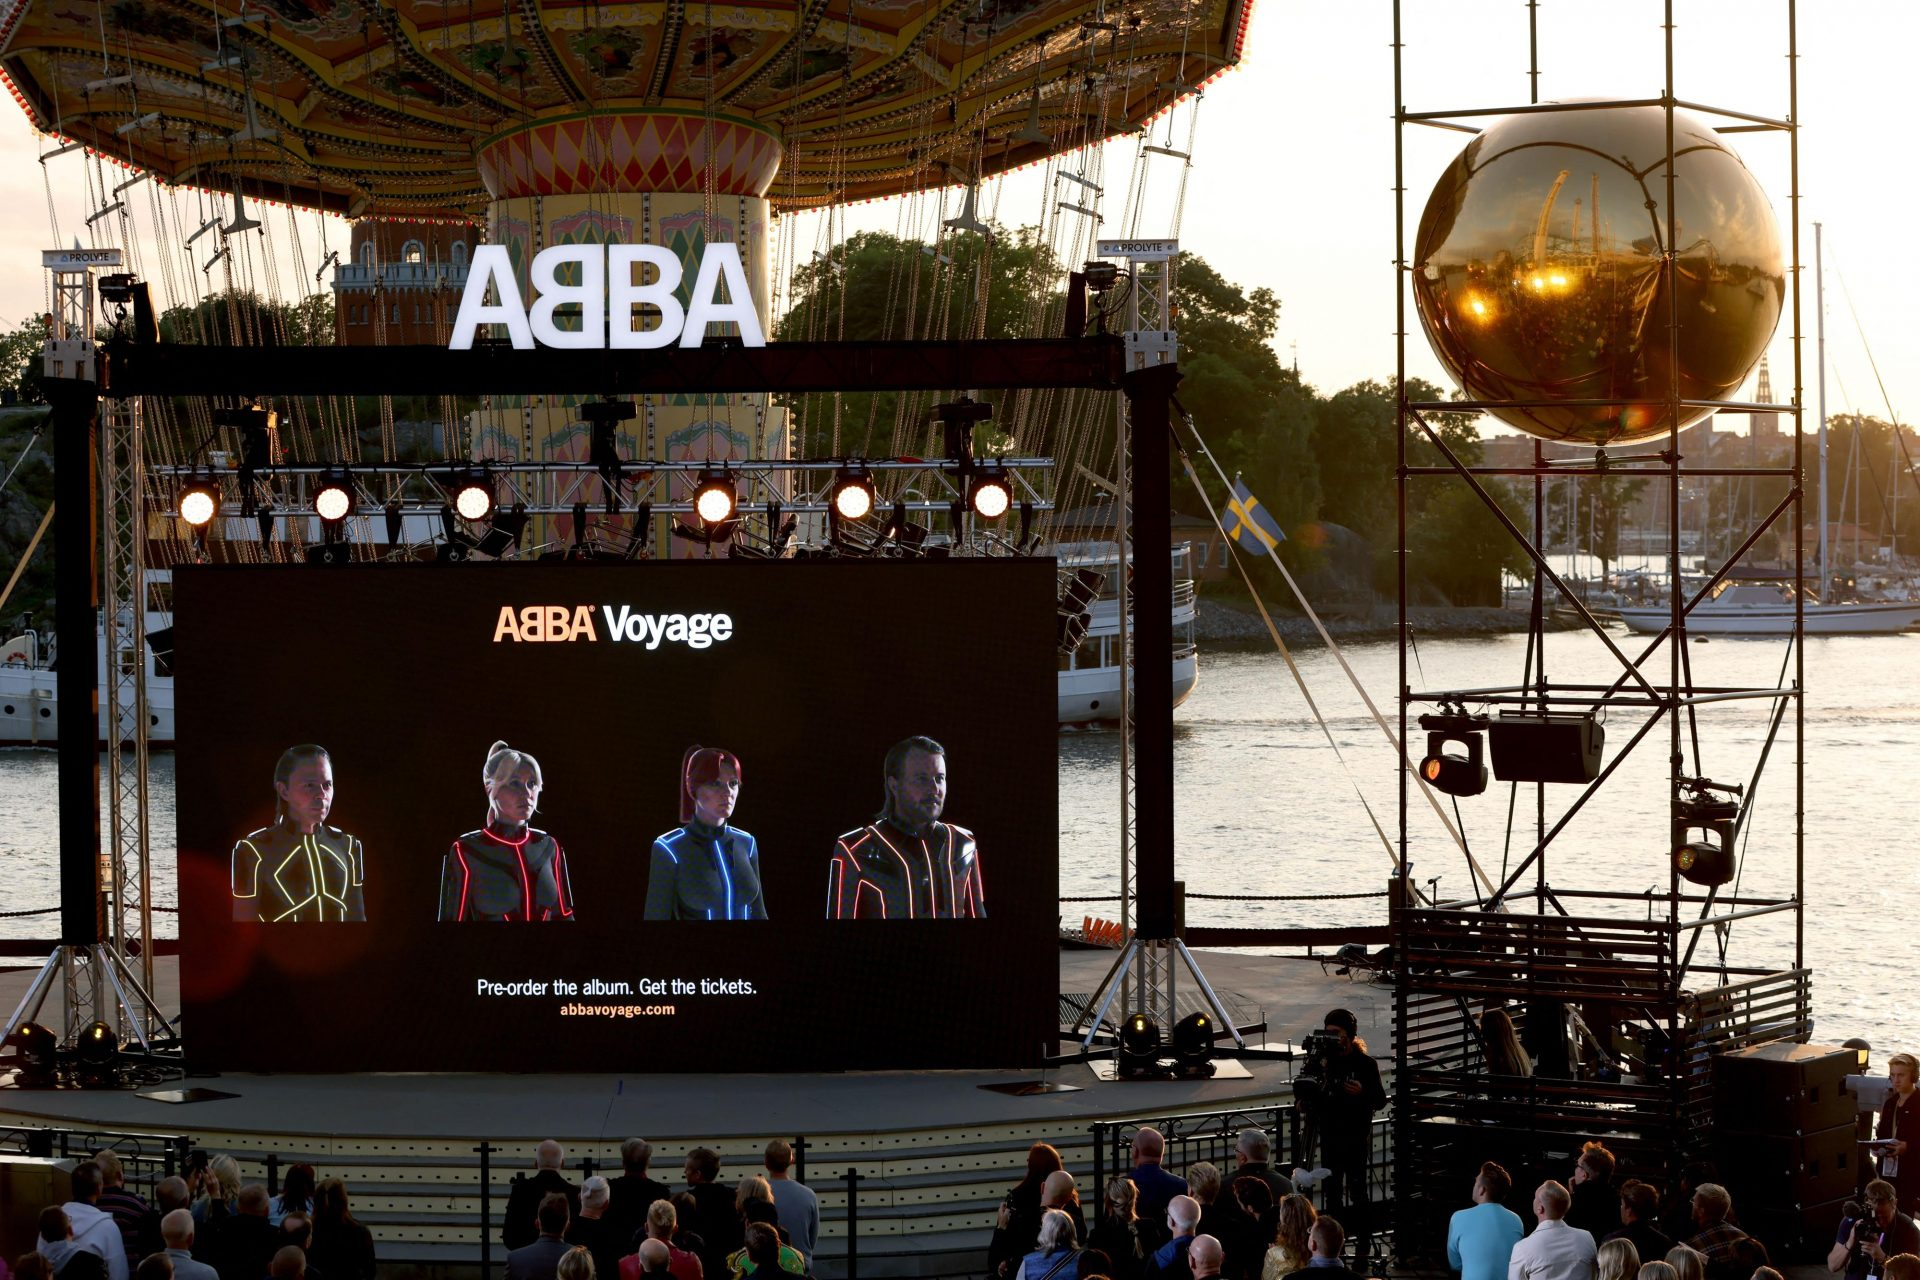 Abba's Abbatars are seen on a display during their Voyage event at Grona Lund, Stockholm. Photograph: Getty Images.